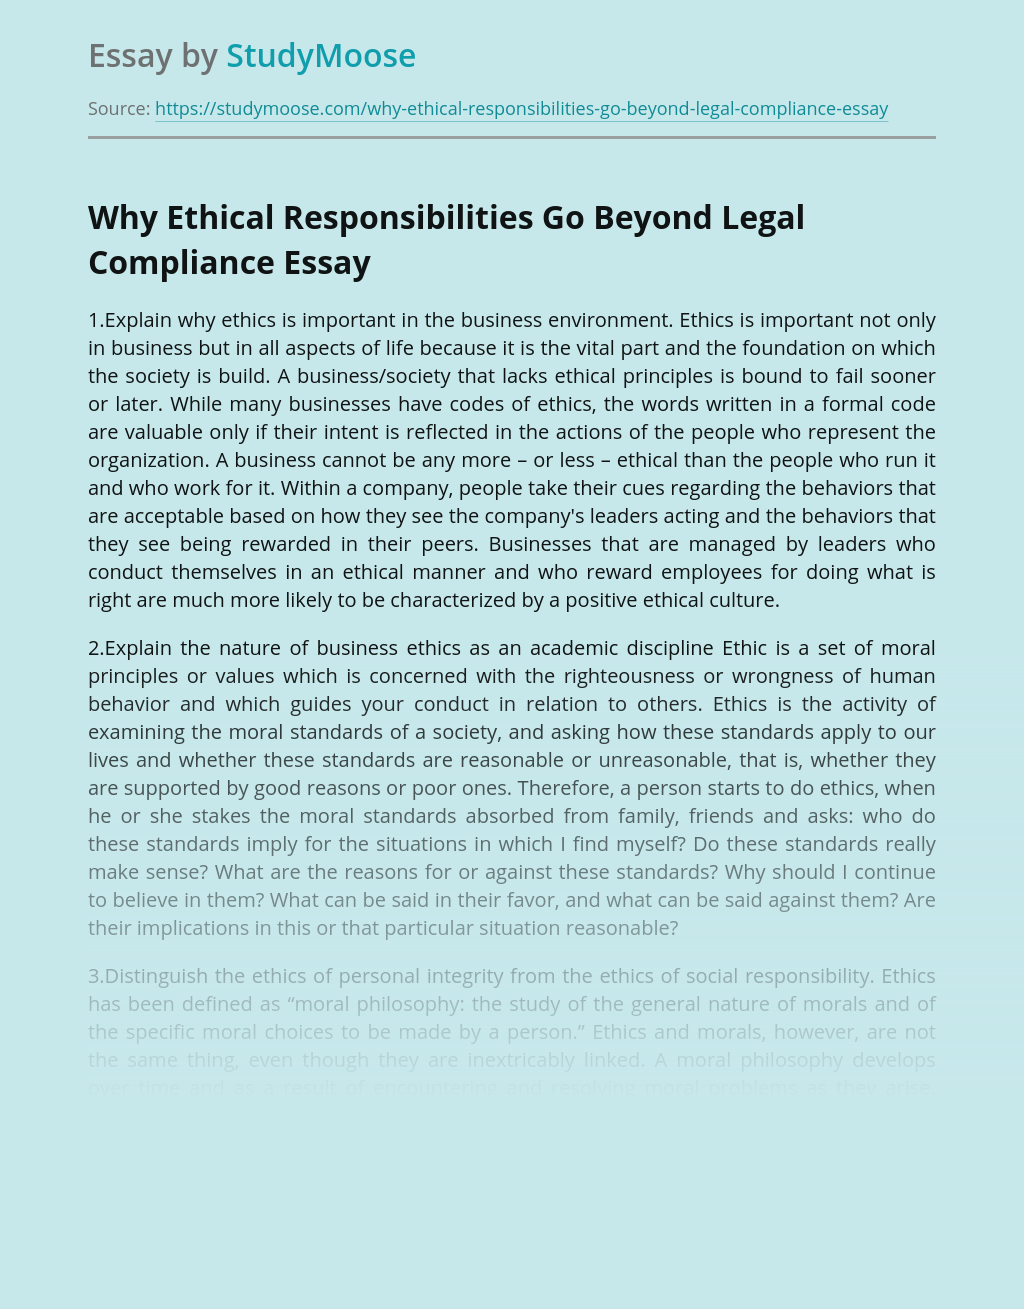 Why Ethical Responsibilities Go Beyond Legal Compliance